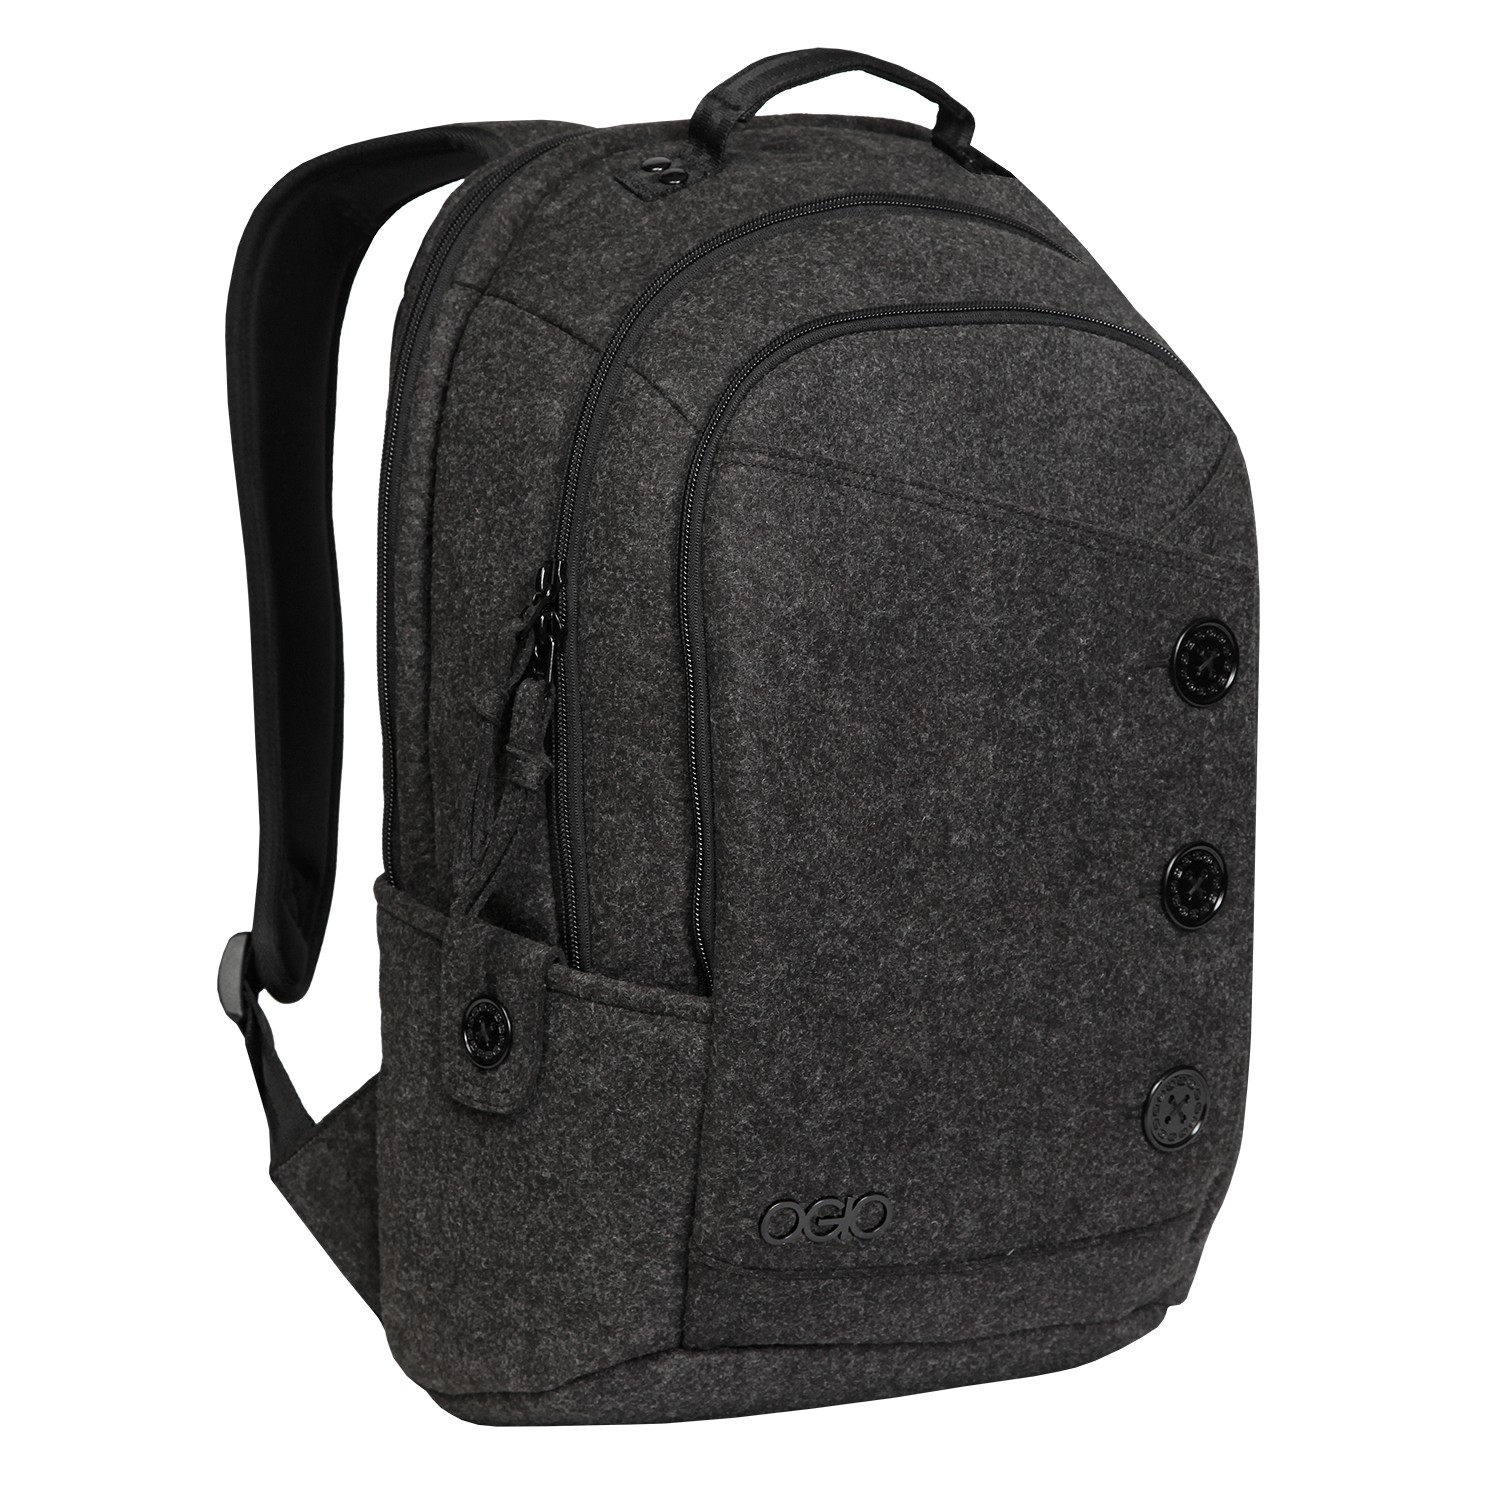 Ogio Backpack Laptop YbvGZlKP